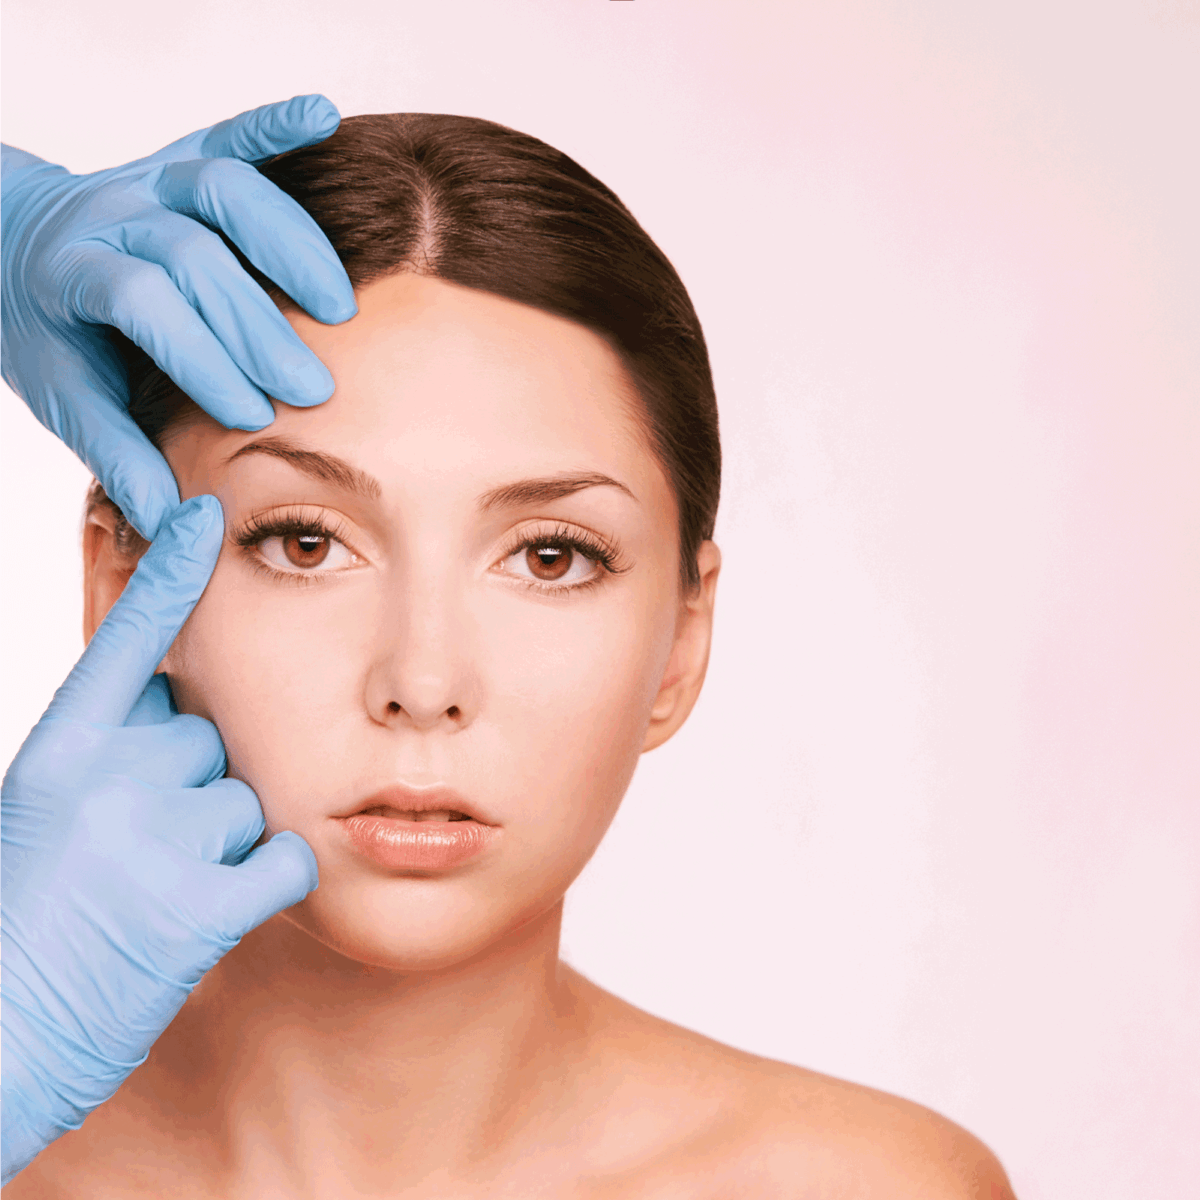 Female derma rejuvenate treatment. Doctor in gloves touch woman face